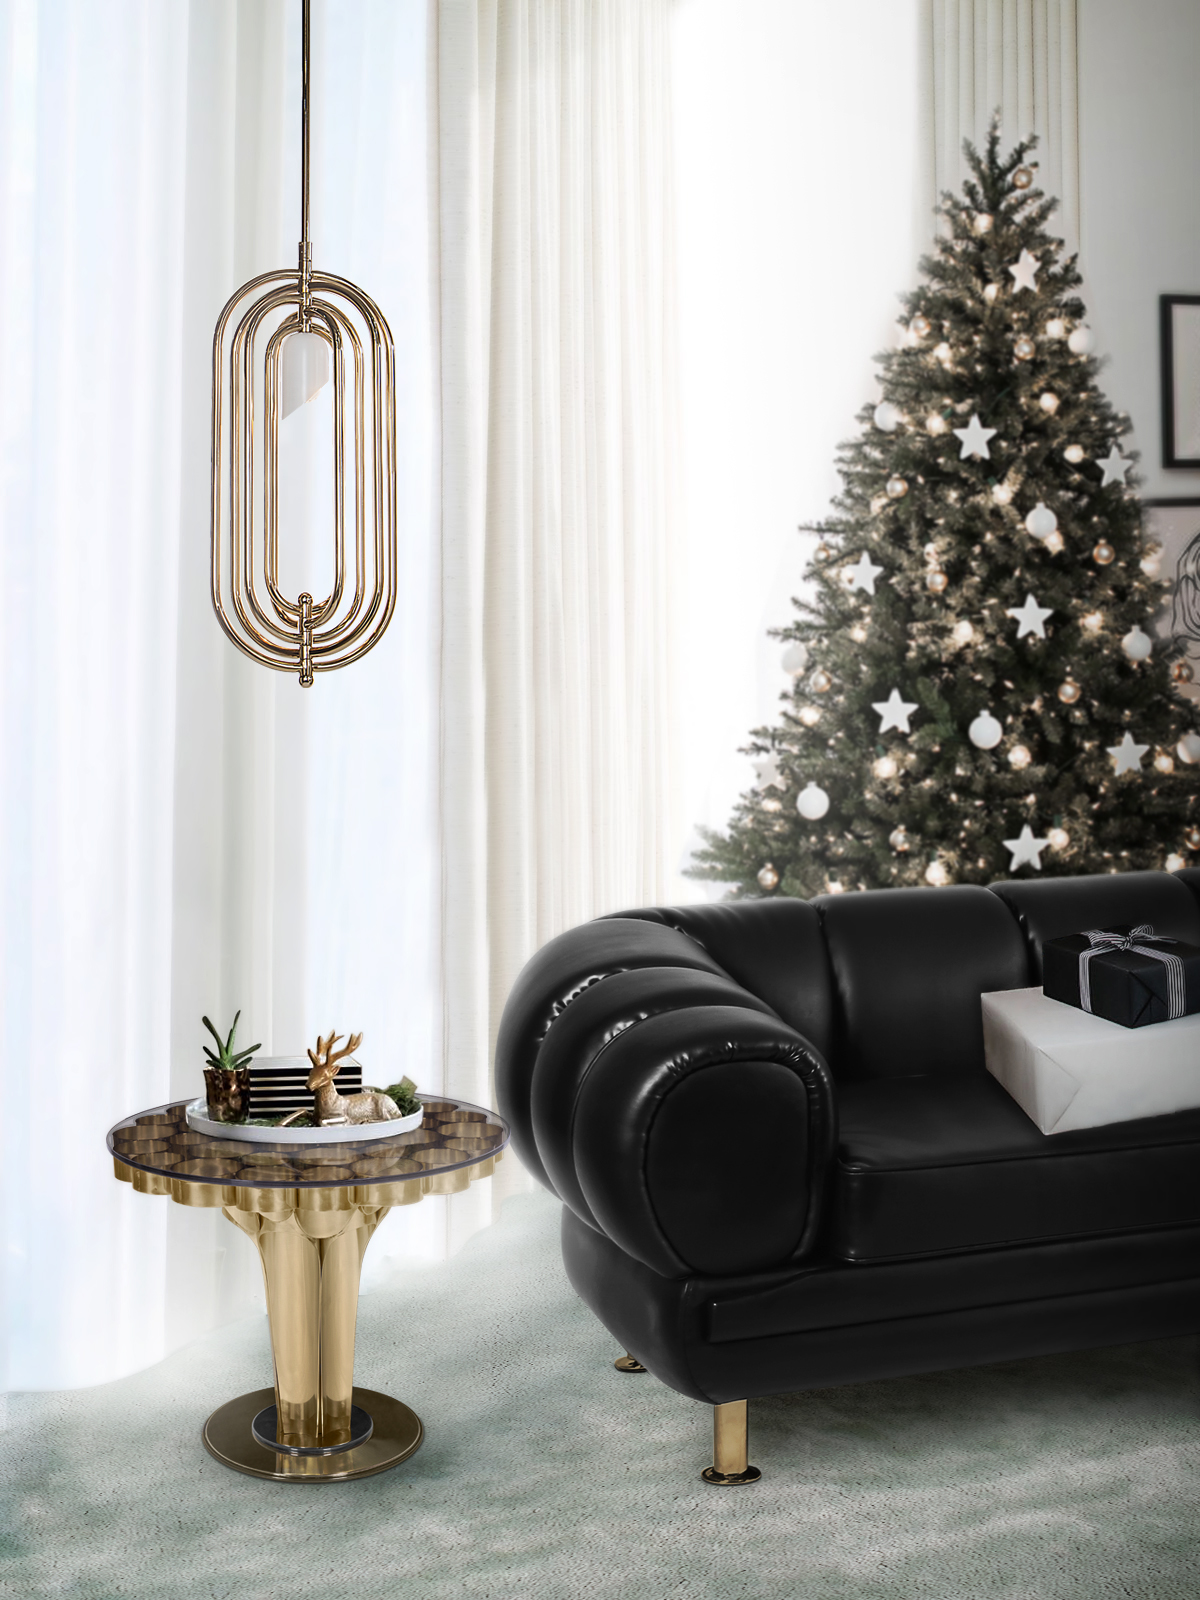 Brighten Up Your Christmas Decoration Ideas! 4